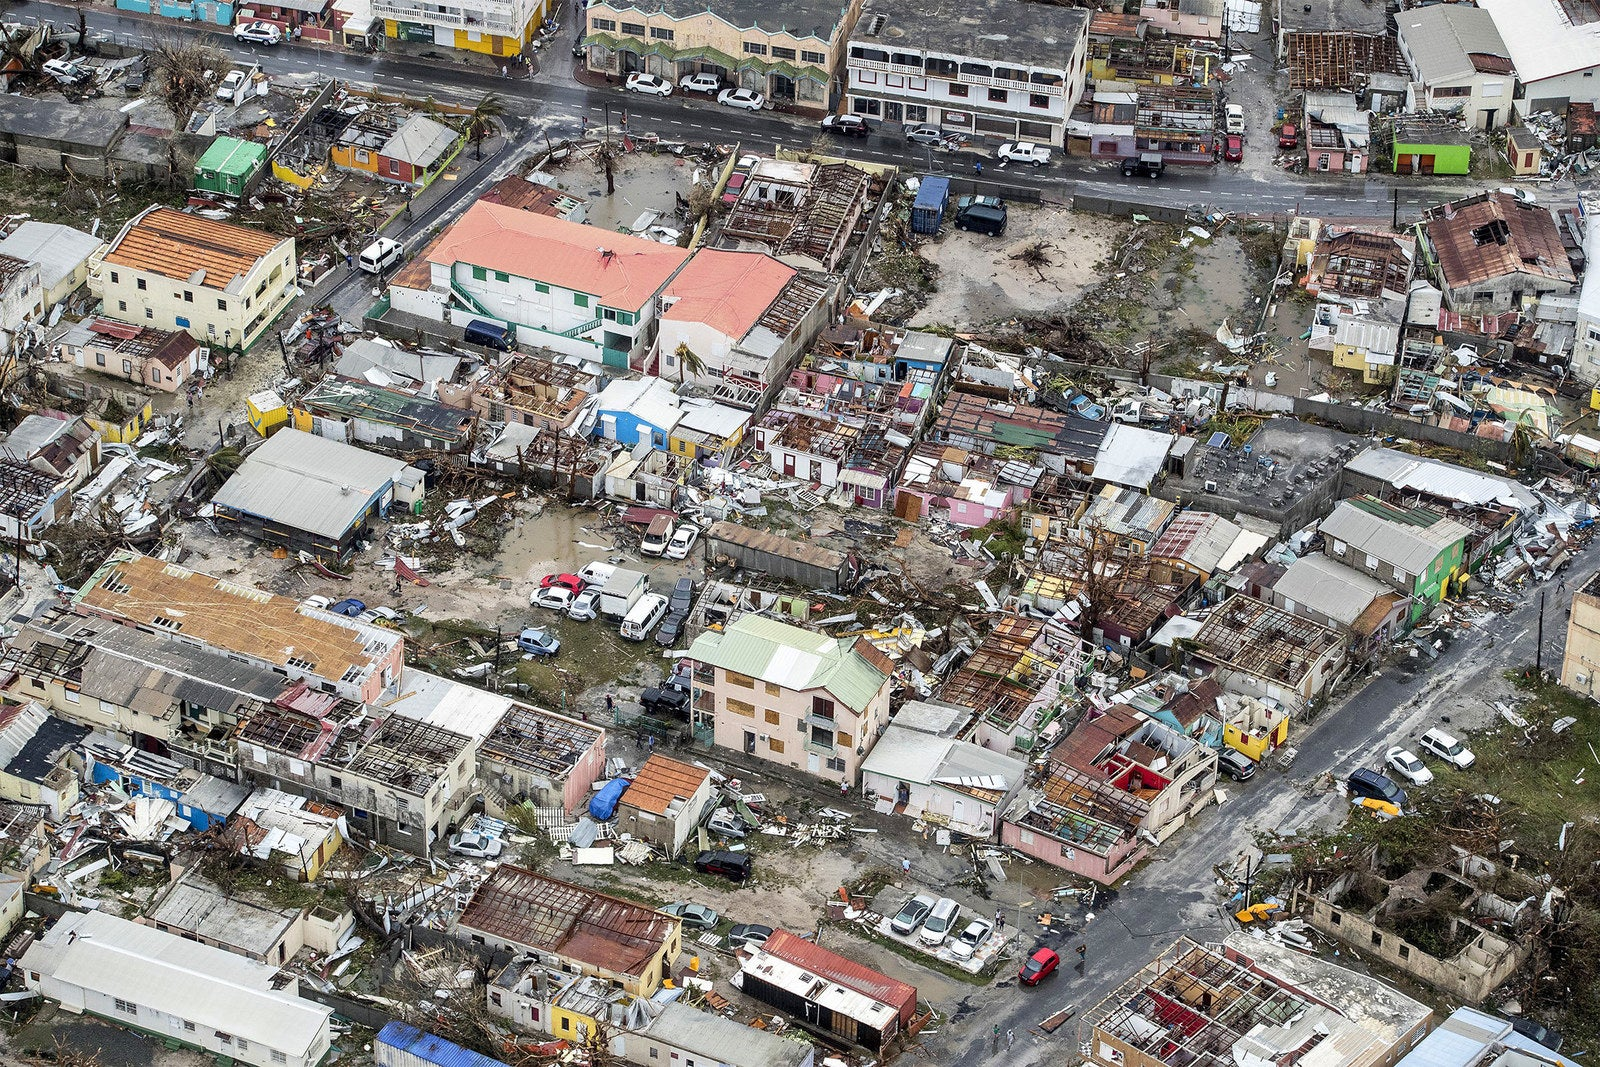 An aerial photograph taken and released by the Dutch department of Defense on Wednesday shows the damage of Hurricane Irma in Philipsburg, Sint Maarten.